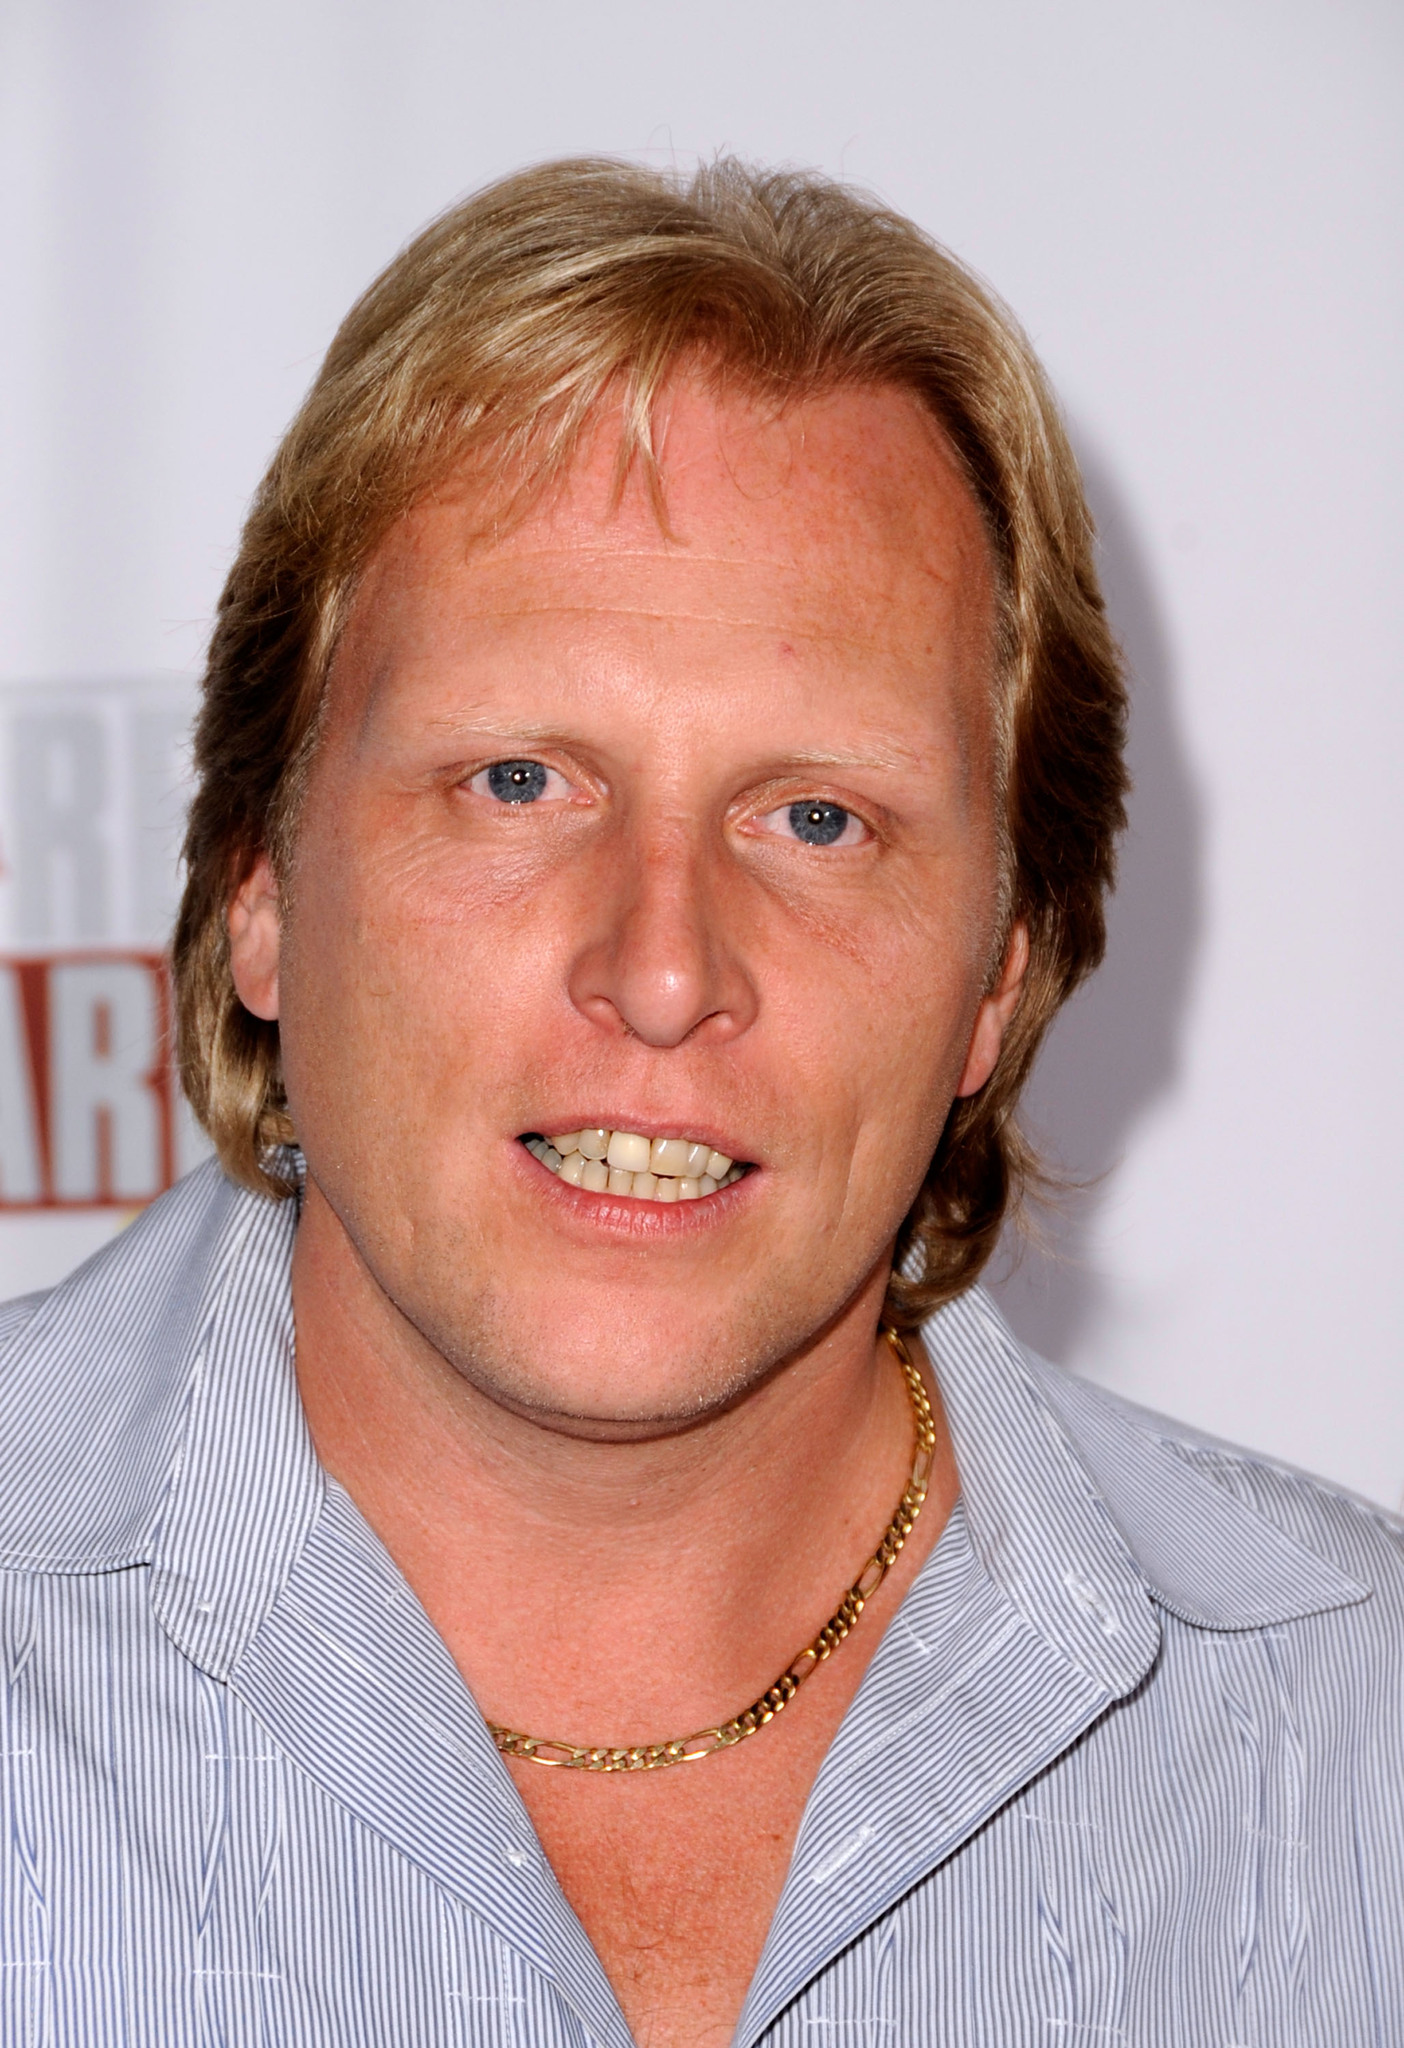 The 54-year old son of father (?) and mother(?) Sig Hansen in 2021 photo. Sig Hansen earned a  million dollar salary - leaving the net worth at  million in 2021